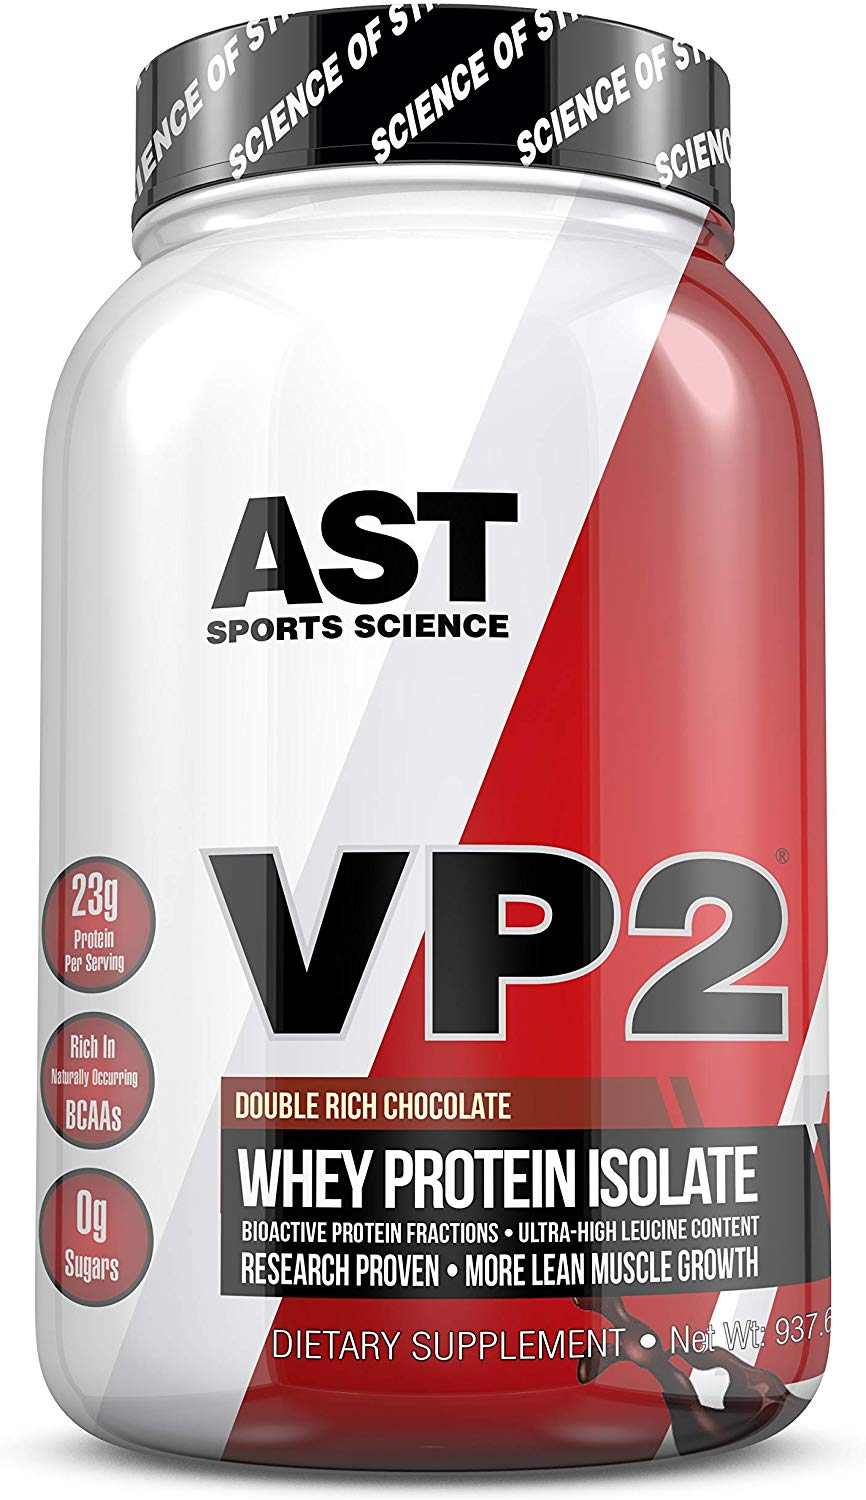 VP2 Whey Isolate (Double Rich Chocolate) - AST Sports Science - Science Backed Protein Formula